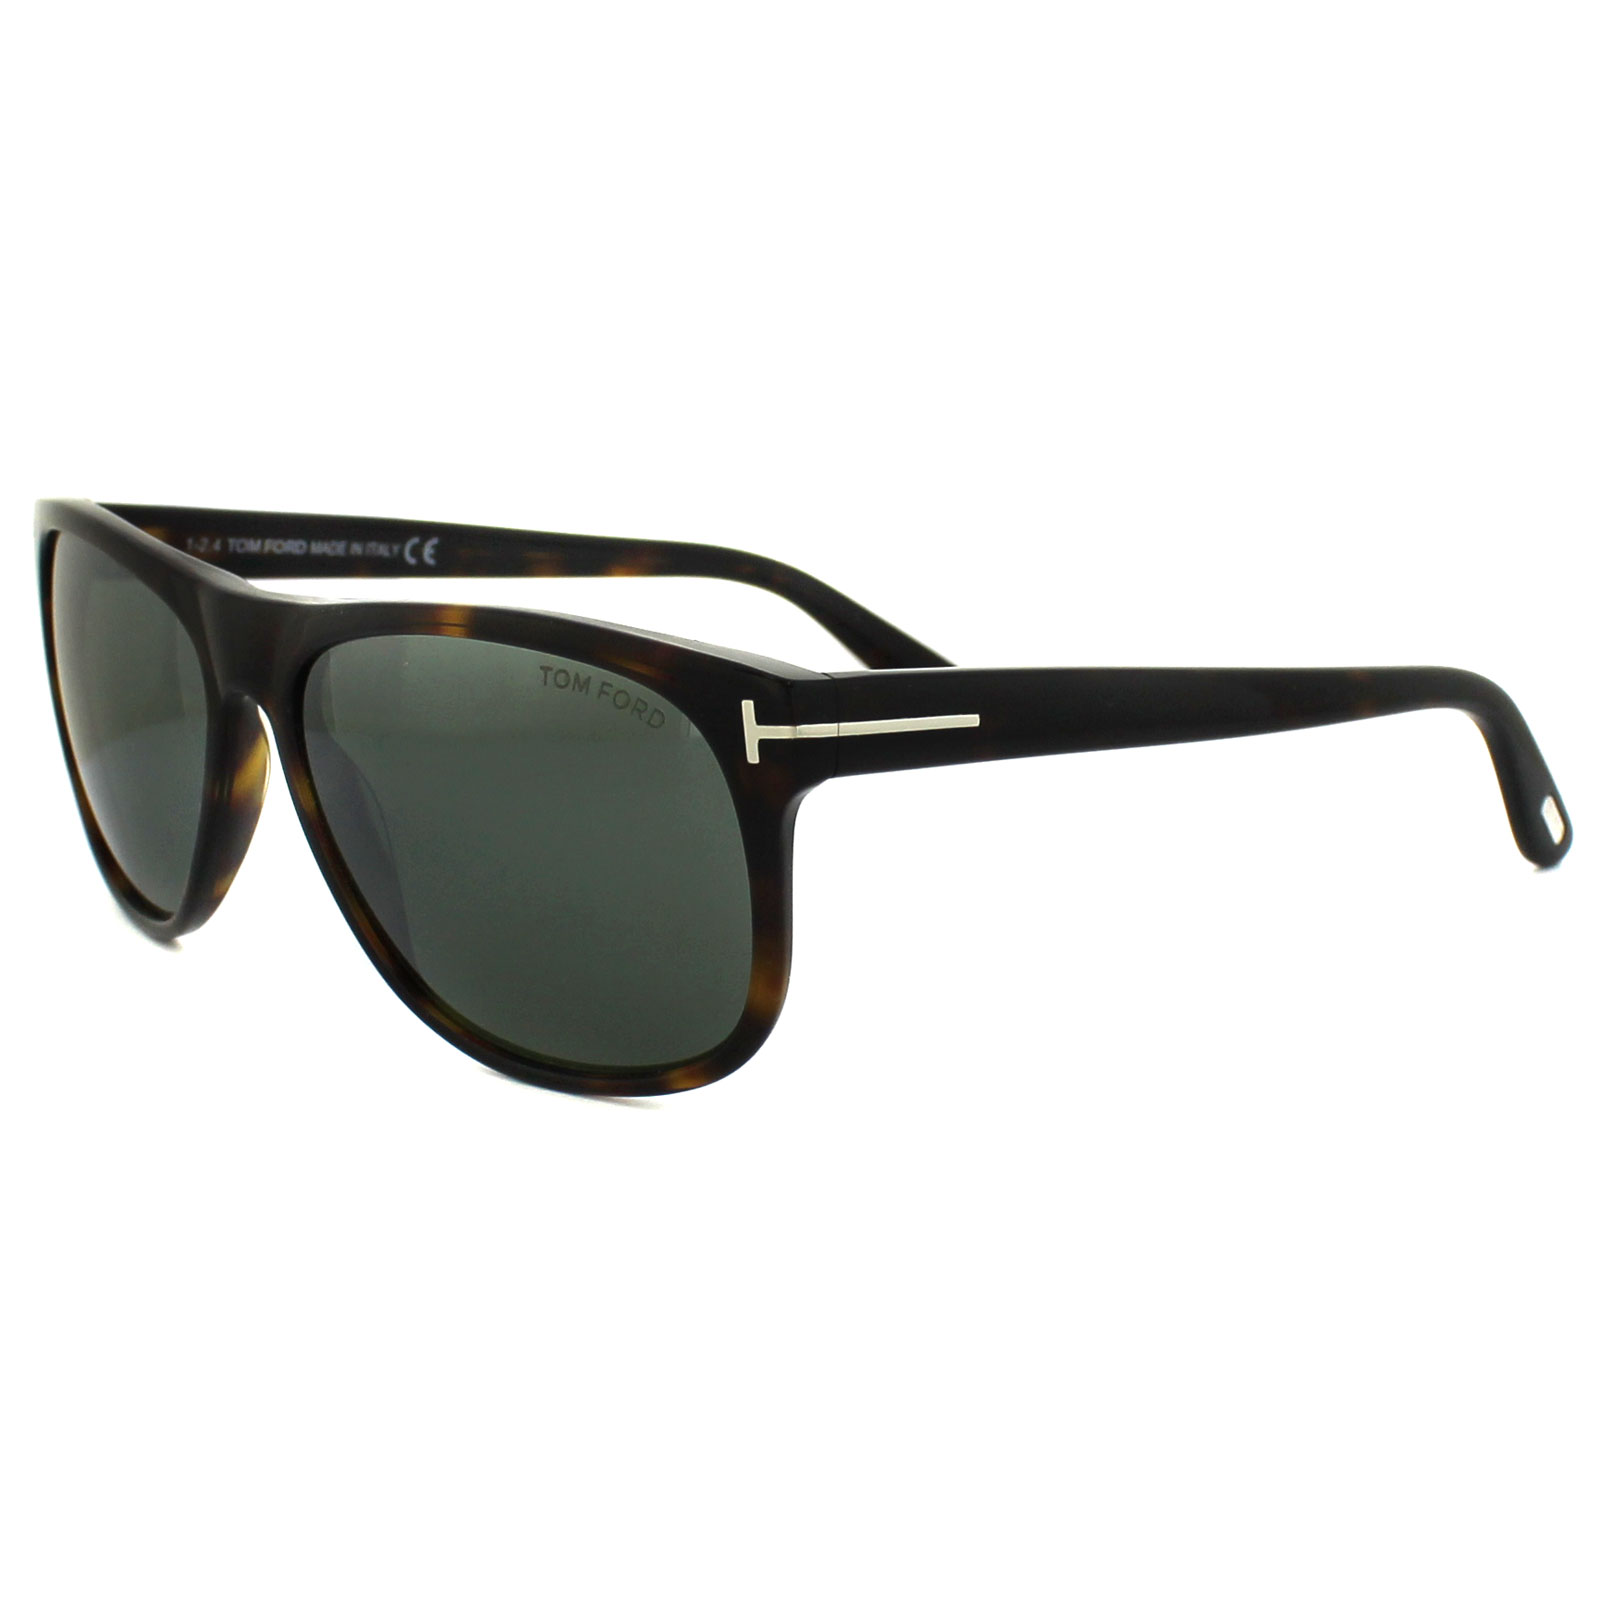 Cheap Tom Ford 0236 Olivier Sunglasses Discounted Sunglasses